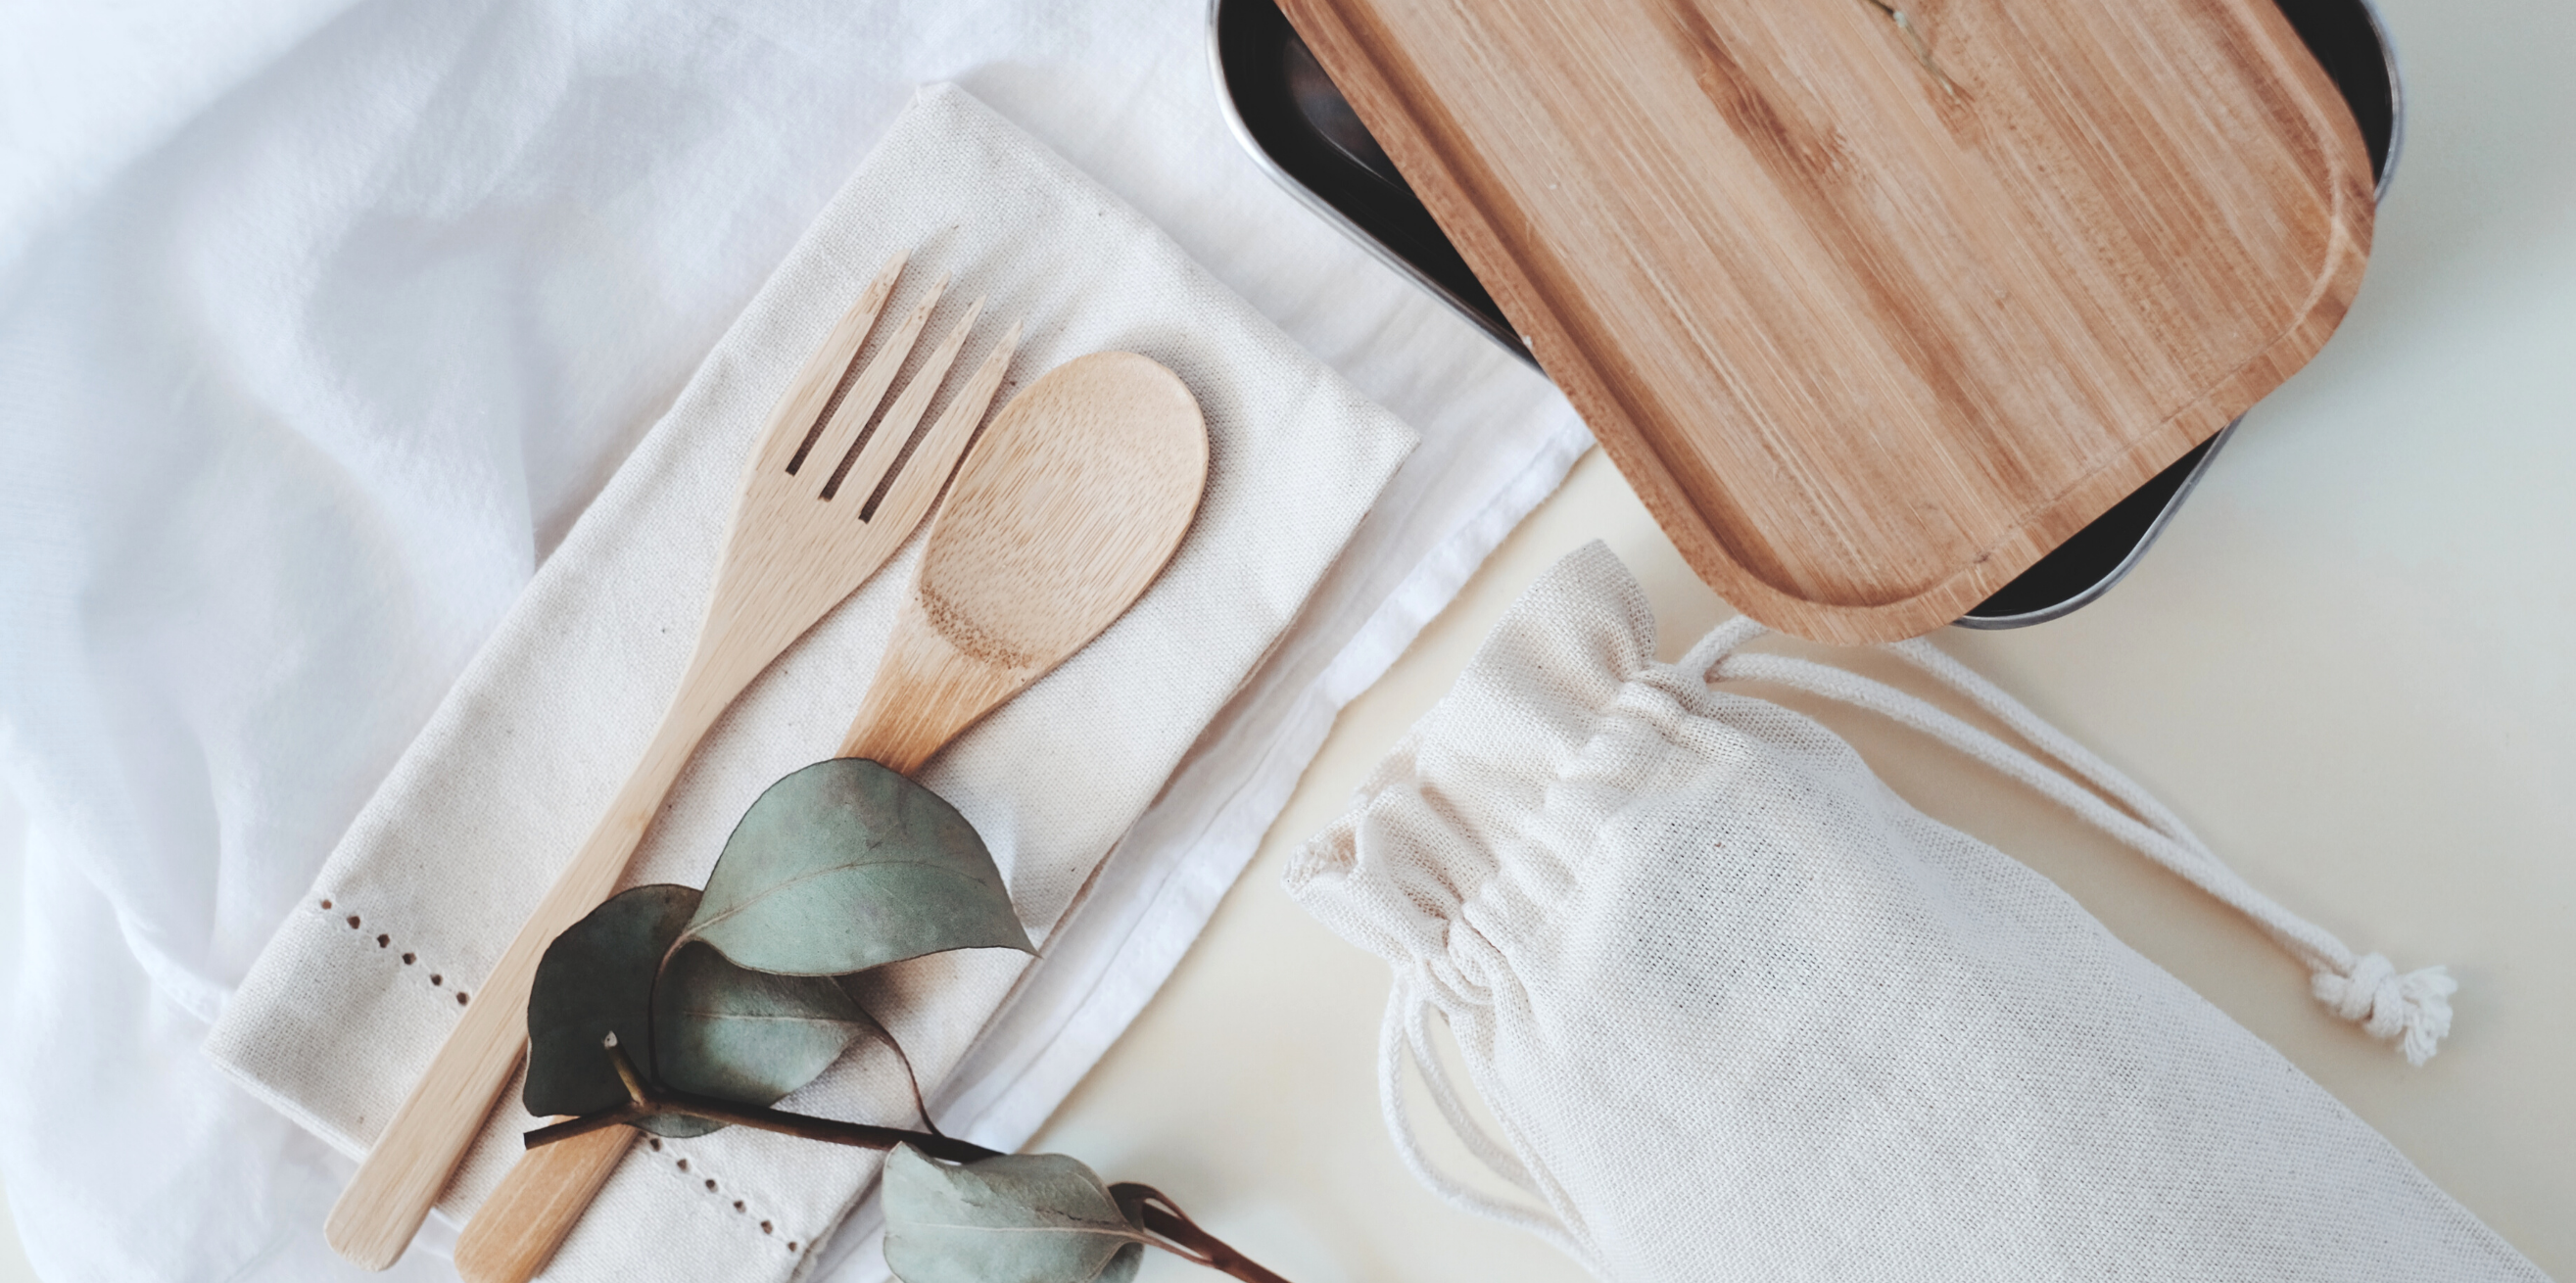 Easy Ways To Go Green - sustainable products flatlay